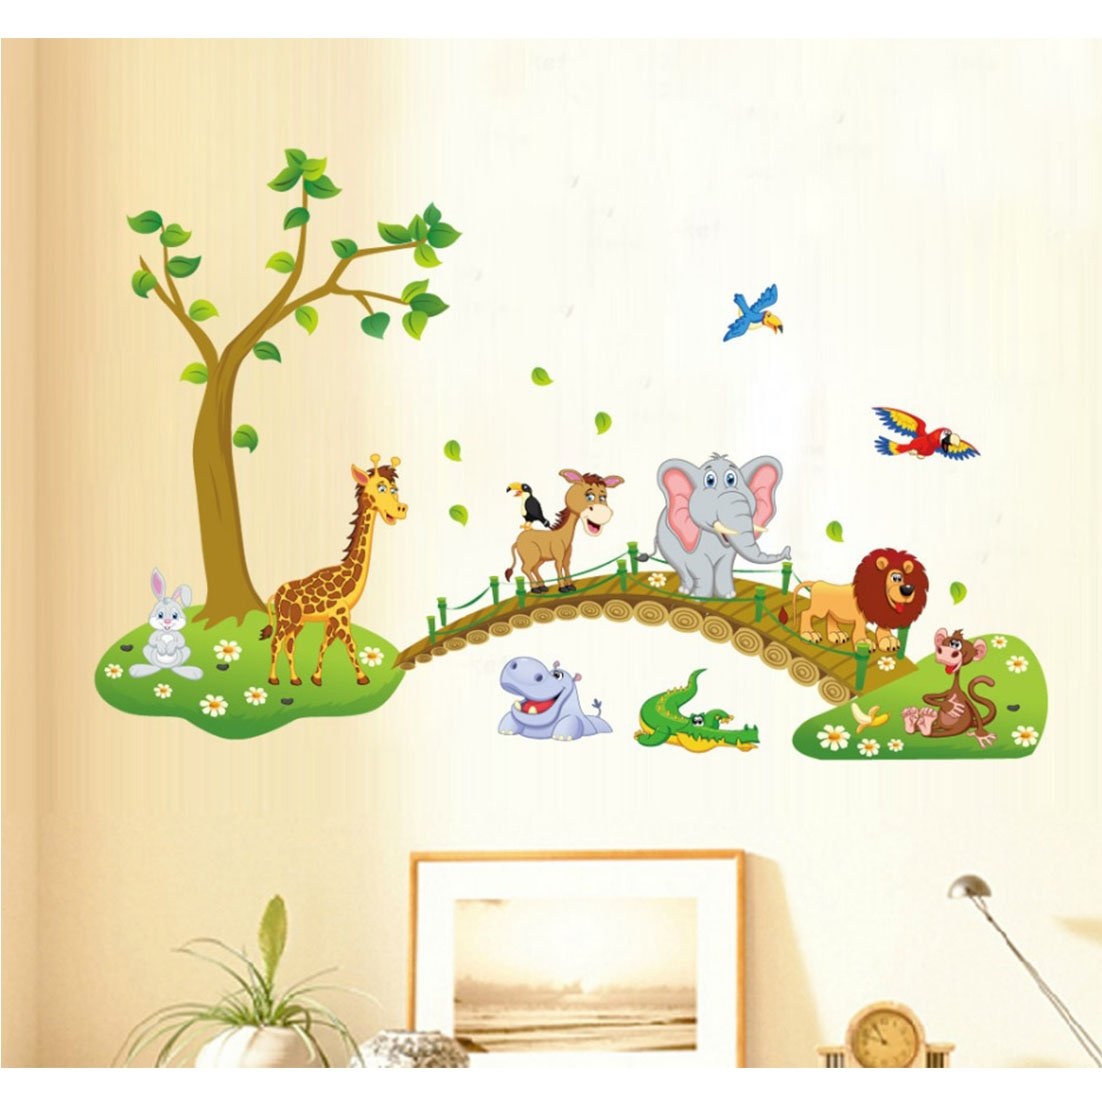 Tandi Kids Child Nurseries Baby Room Wall Decals Stickers Flowers Wild Animals Jungles (Wild Animals 140(W)X90(H) CM) Amazon.co.uk DIY u0026 Tools  sc 1 st  Amazon UK : wall decal for baby room - www.pureclipart.com